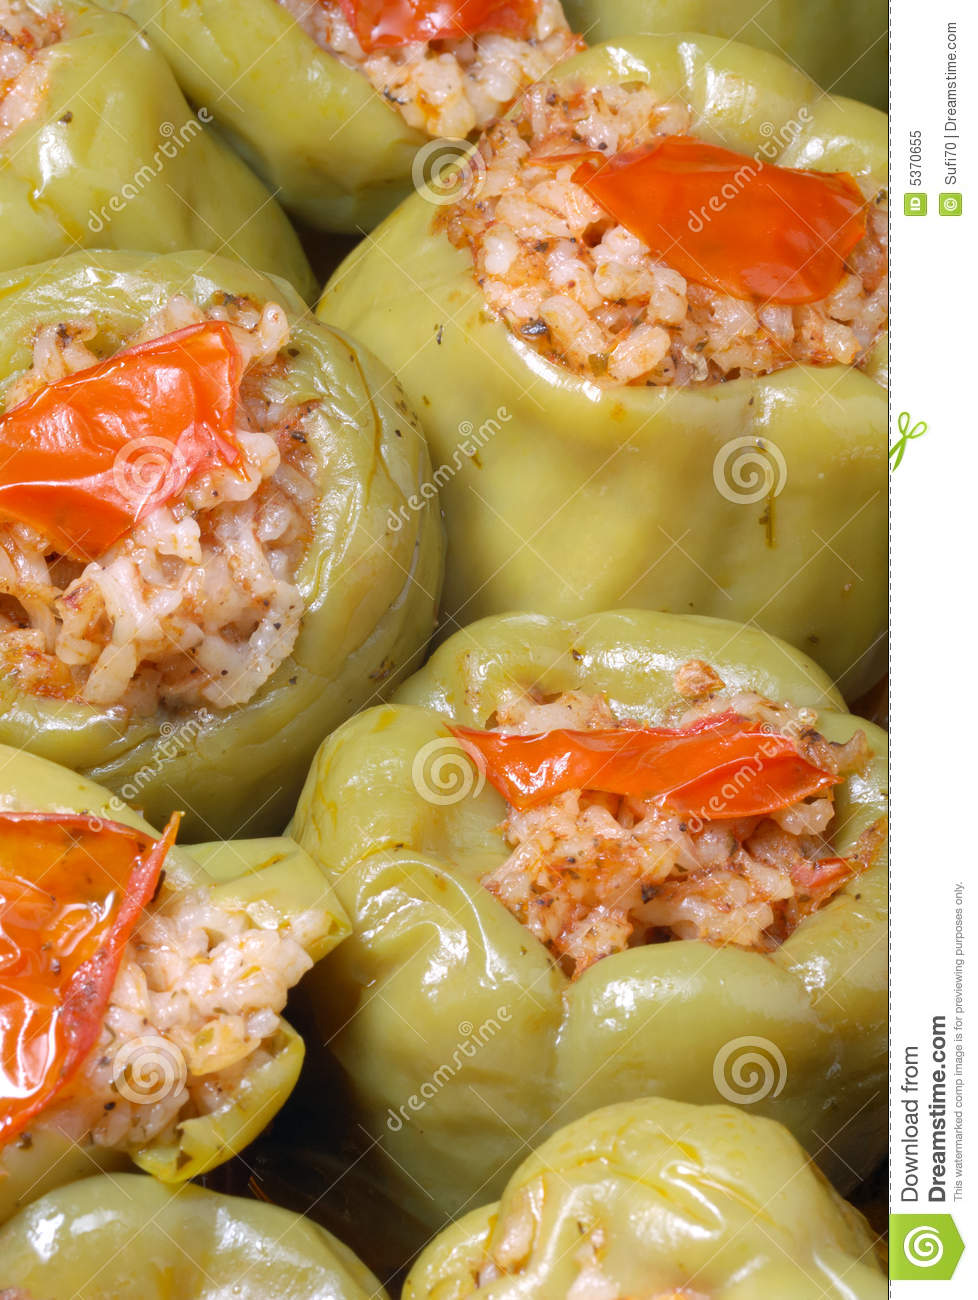 Turkish food royalty free stock photo image 5370655 for About turkish cuisine